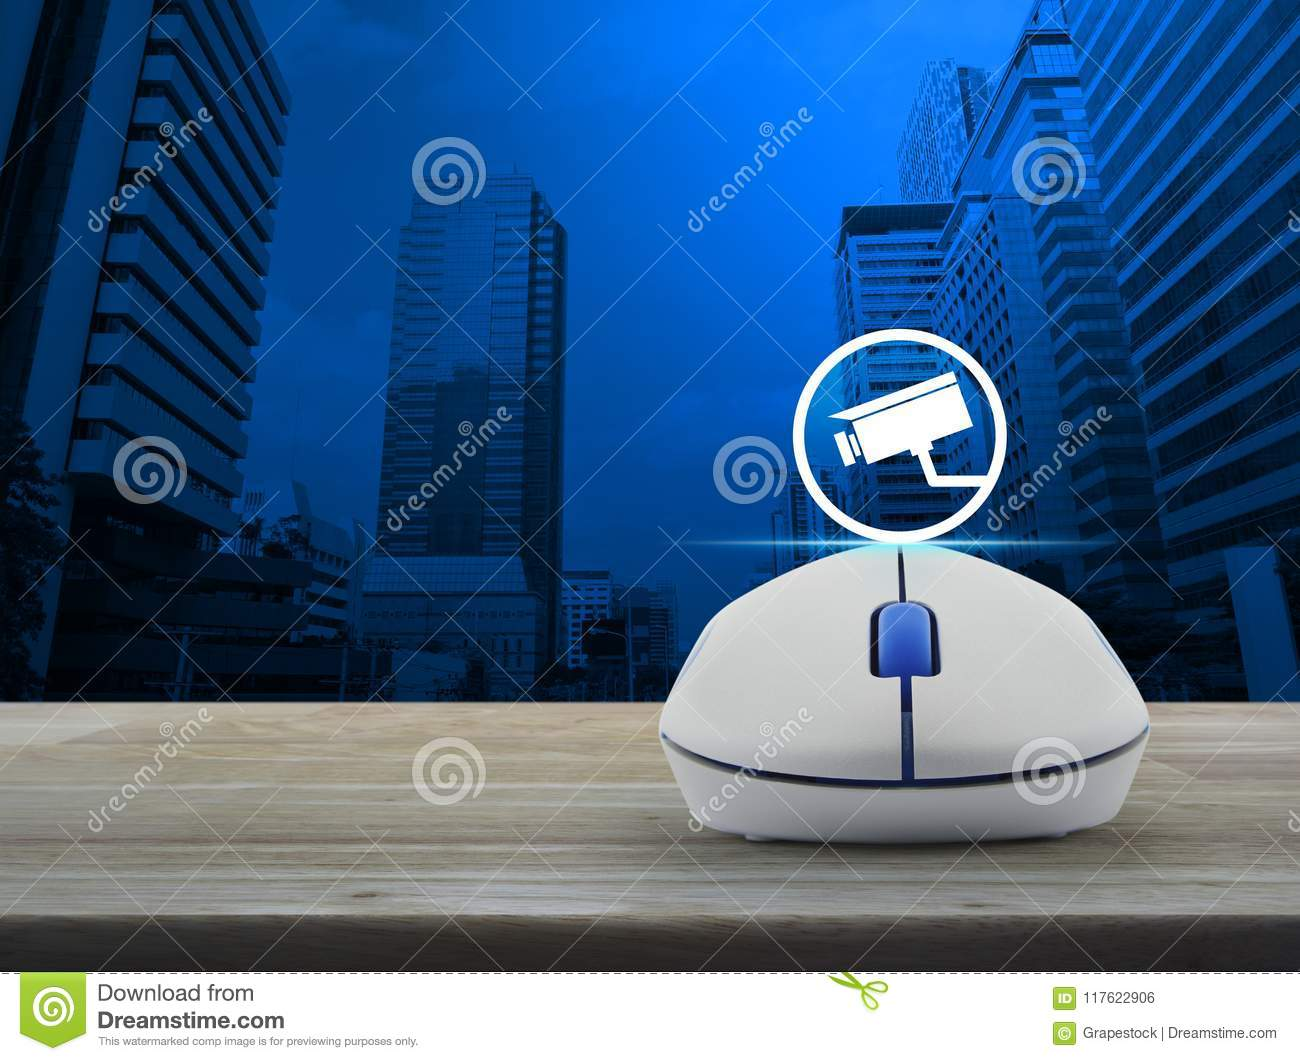 Business Security And Safety Concept Stock Photo - Image of